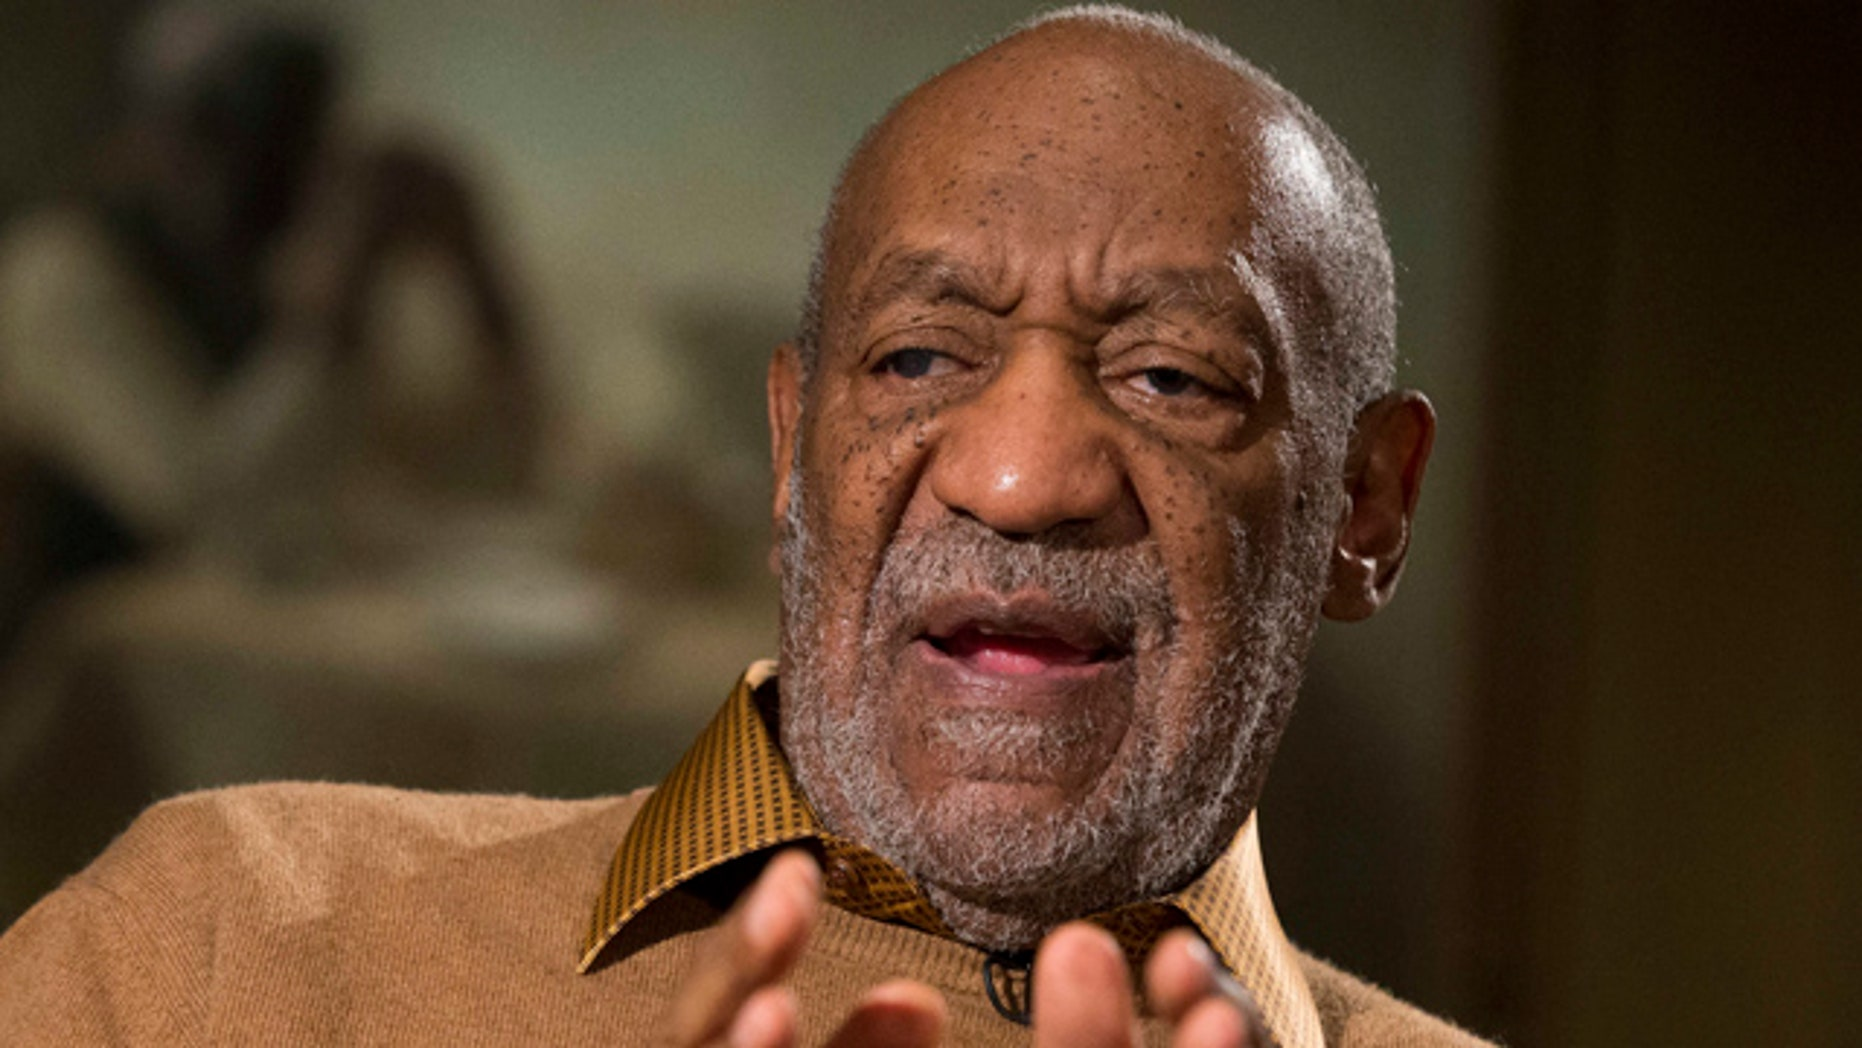 FILE - In this Nov. 6, 2014 file photo, entertainer Bill Cosby gestures during an interview about the upcoming exhibit, 'Conversations: African and African-American Artworks in Dialogue,' at the Smithsonian's National Museum of African Art, in Washington.  (AP Photo/Evan Vucci, File)